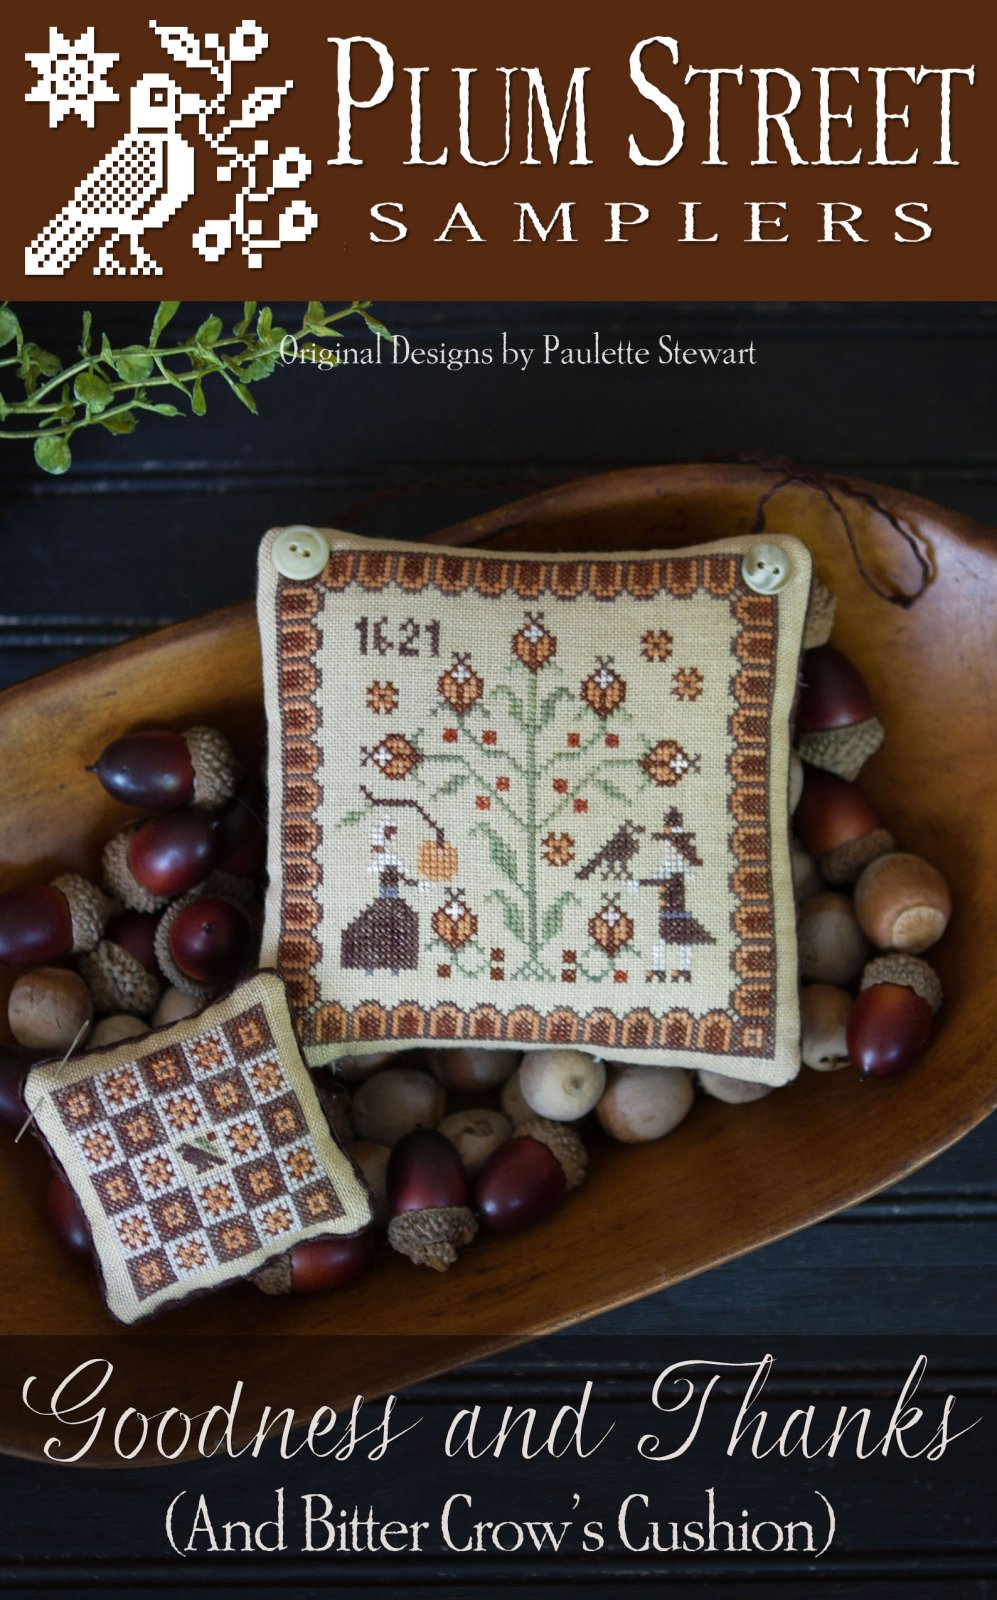 Goodness and Thanks chart - Plum Street Samplers